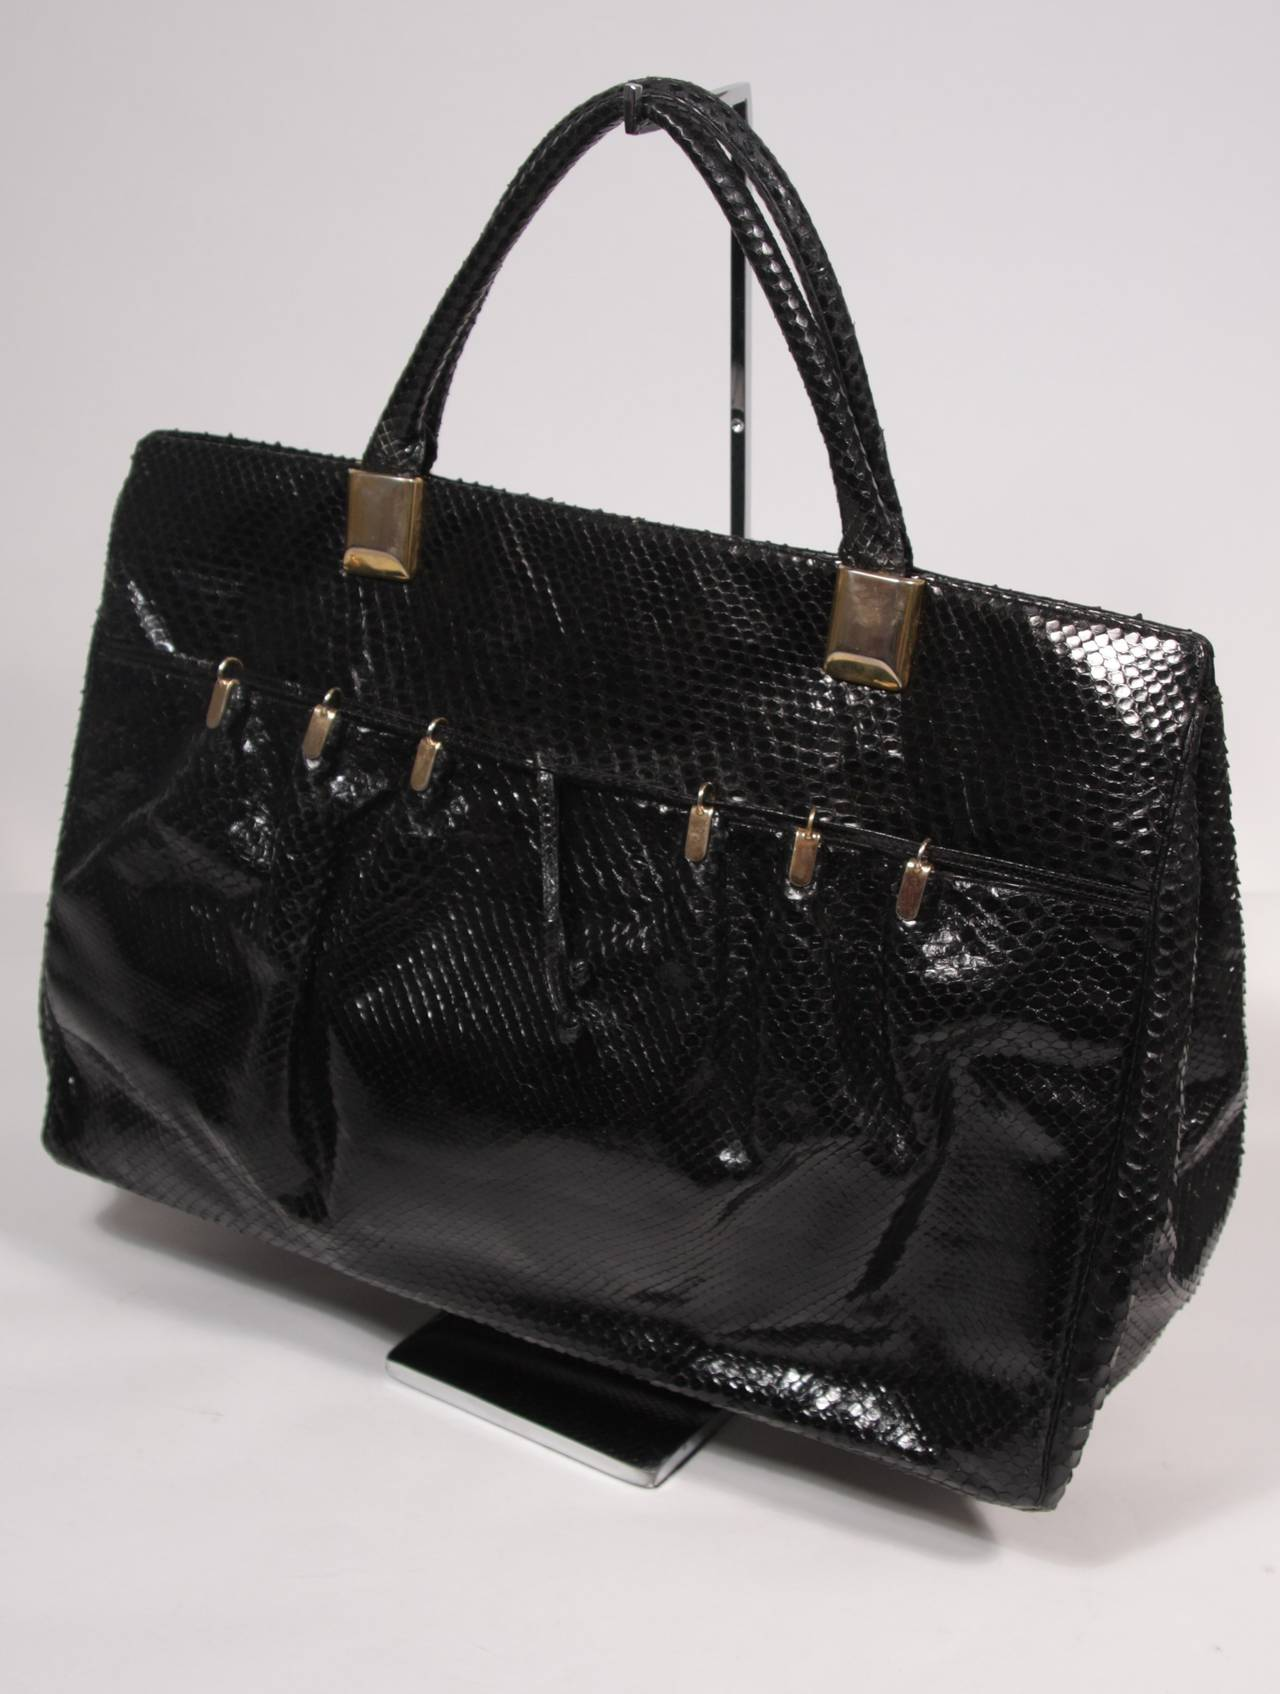 Judith Leiber XL Black Snakeskin Tote with Coin Purse Excellent Condition In Excellent Condition For Sale In Los Angeles, CA